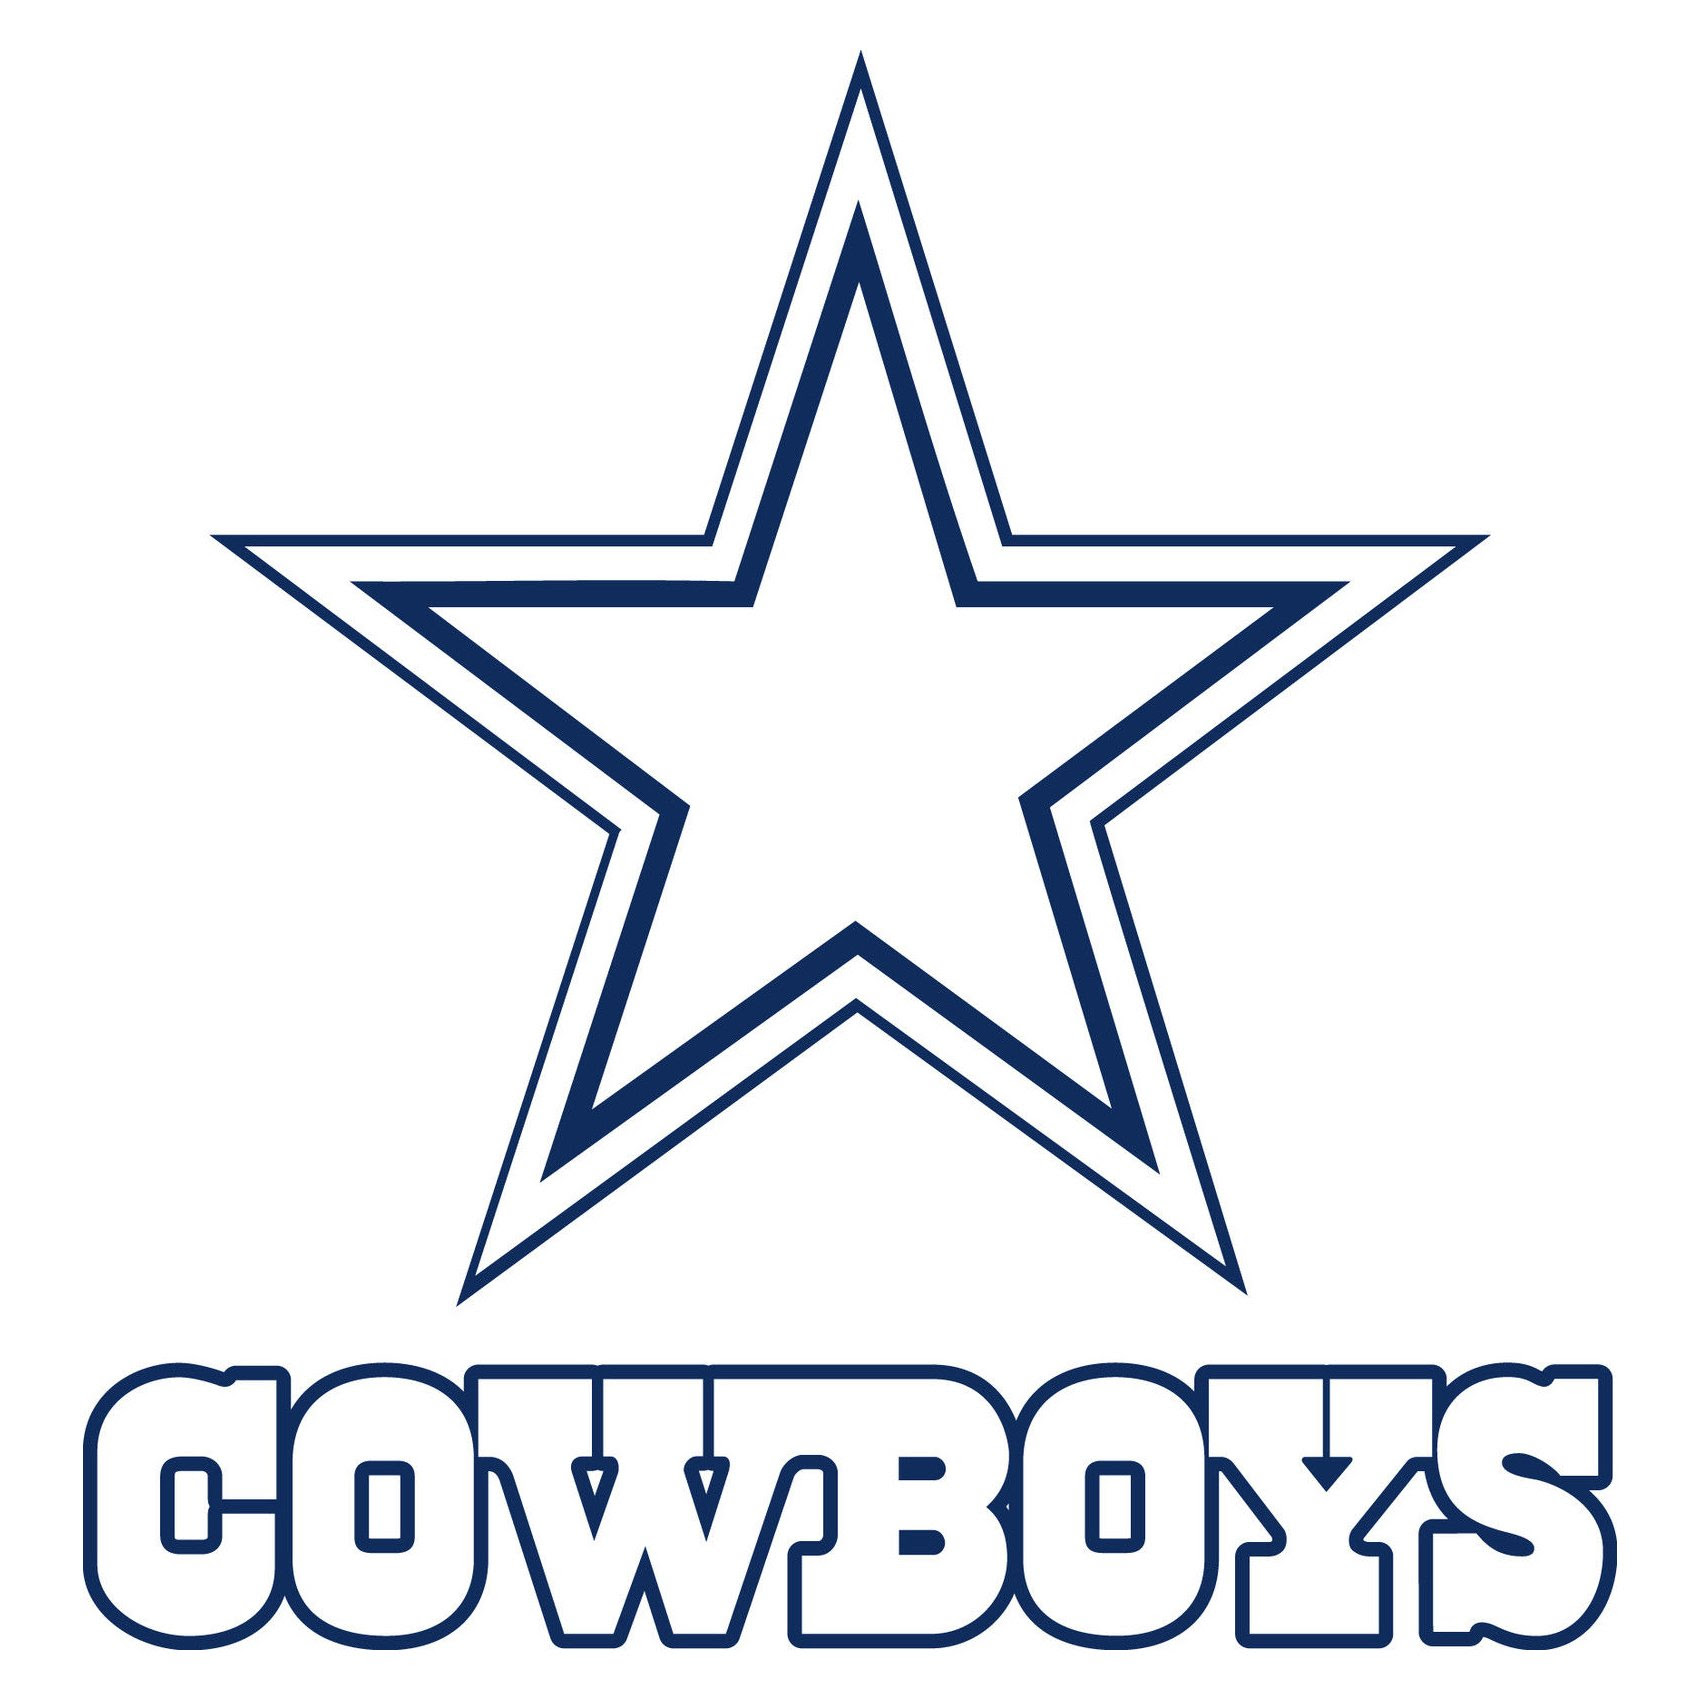 Dallas Cowboys Logo, Dallas Cowboys Symbol Meaning, History and Evolution